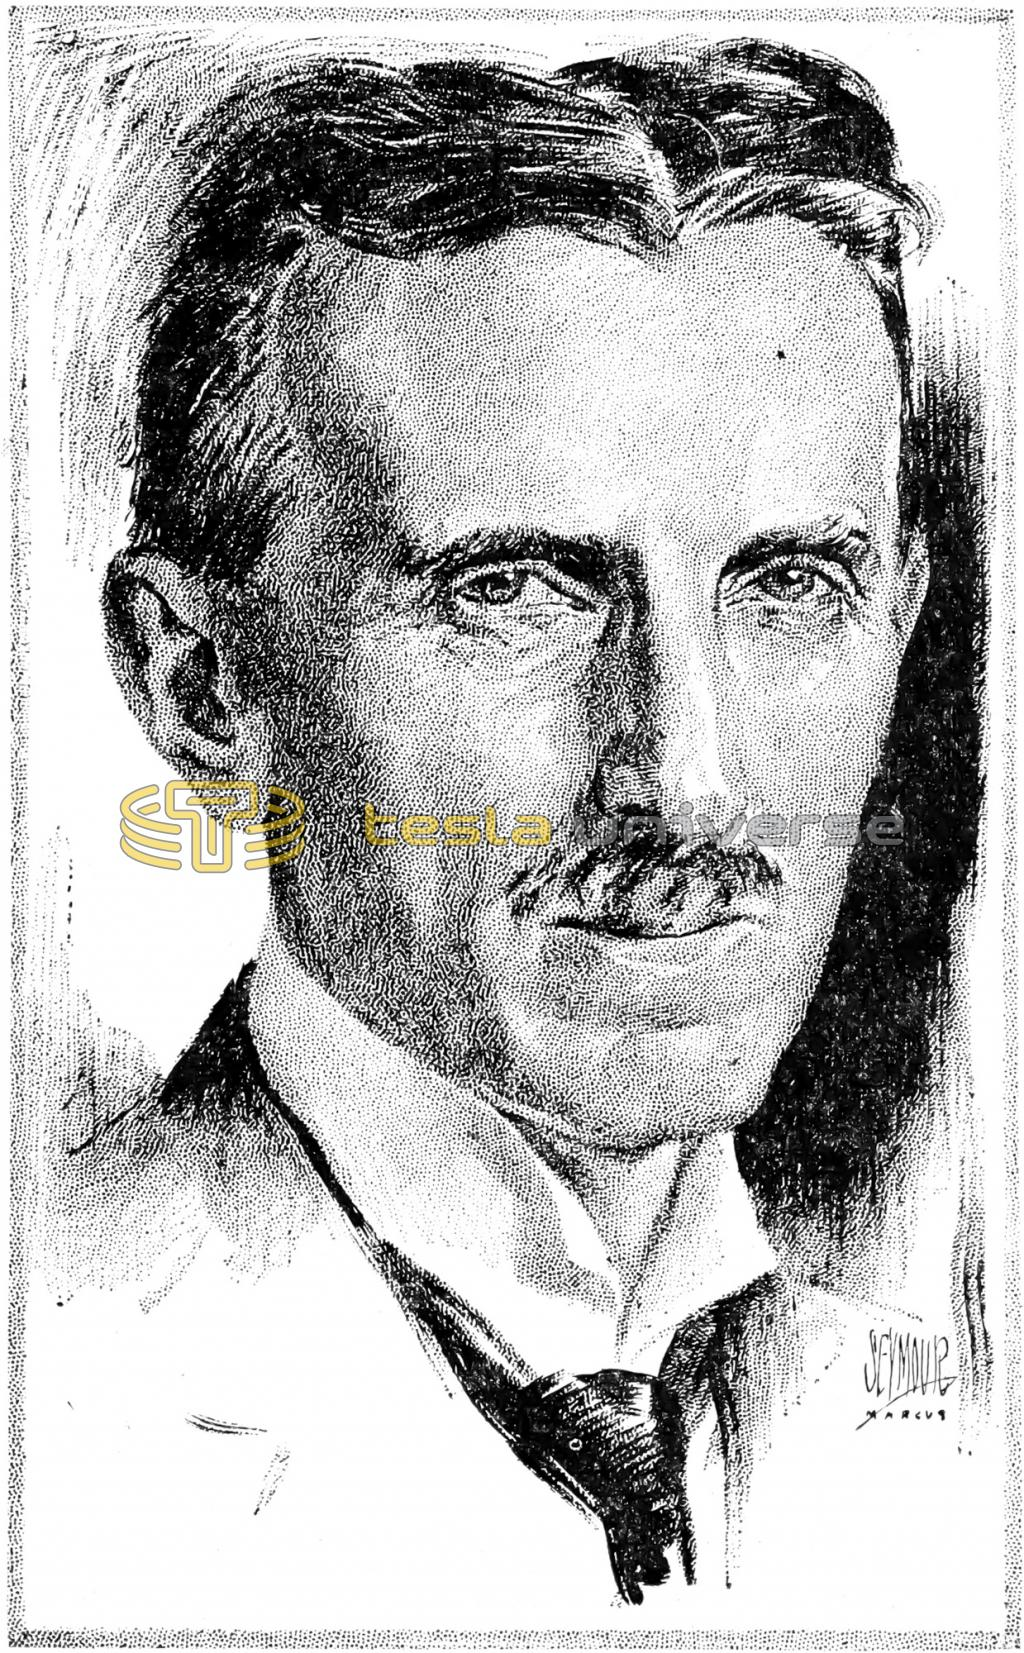 Sketch of Tesla at around 60 years of age